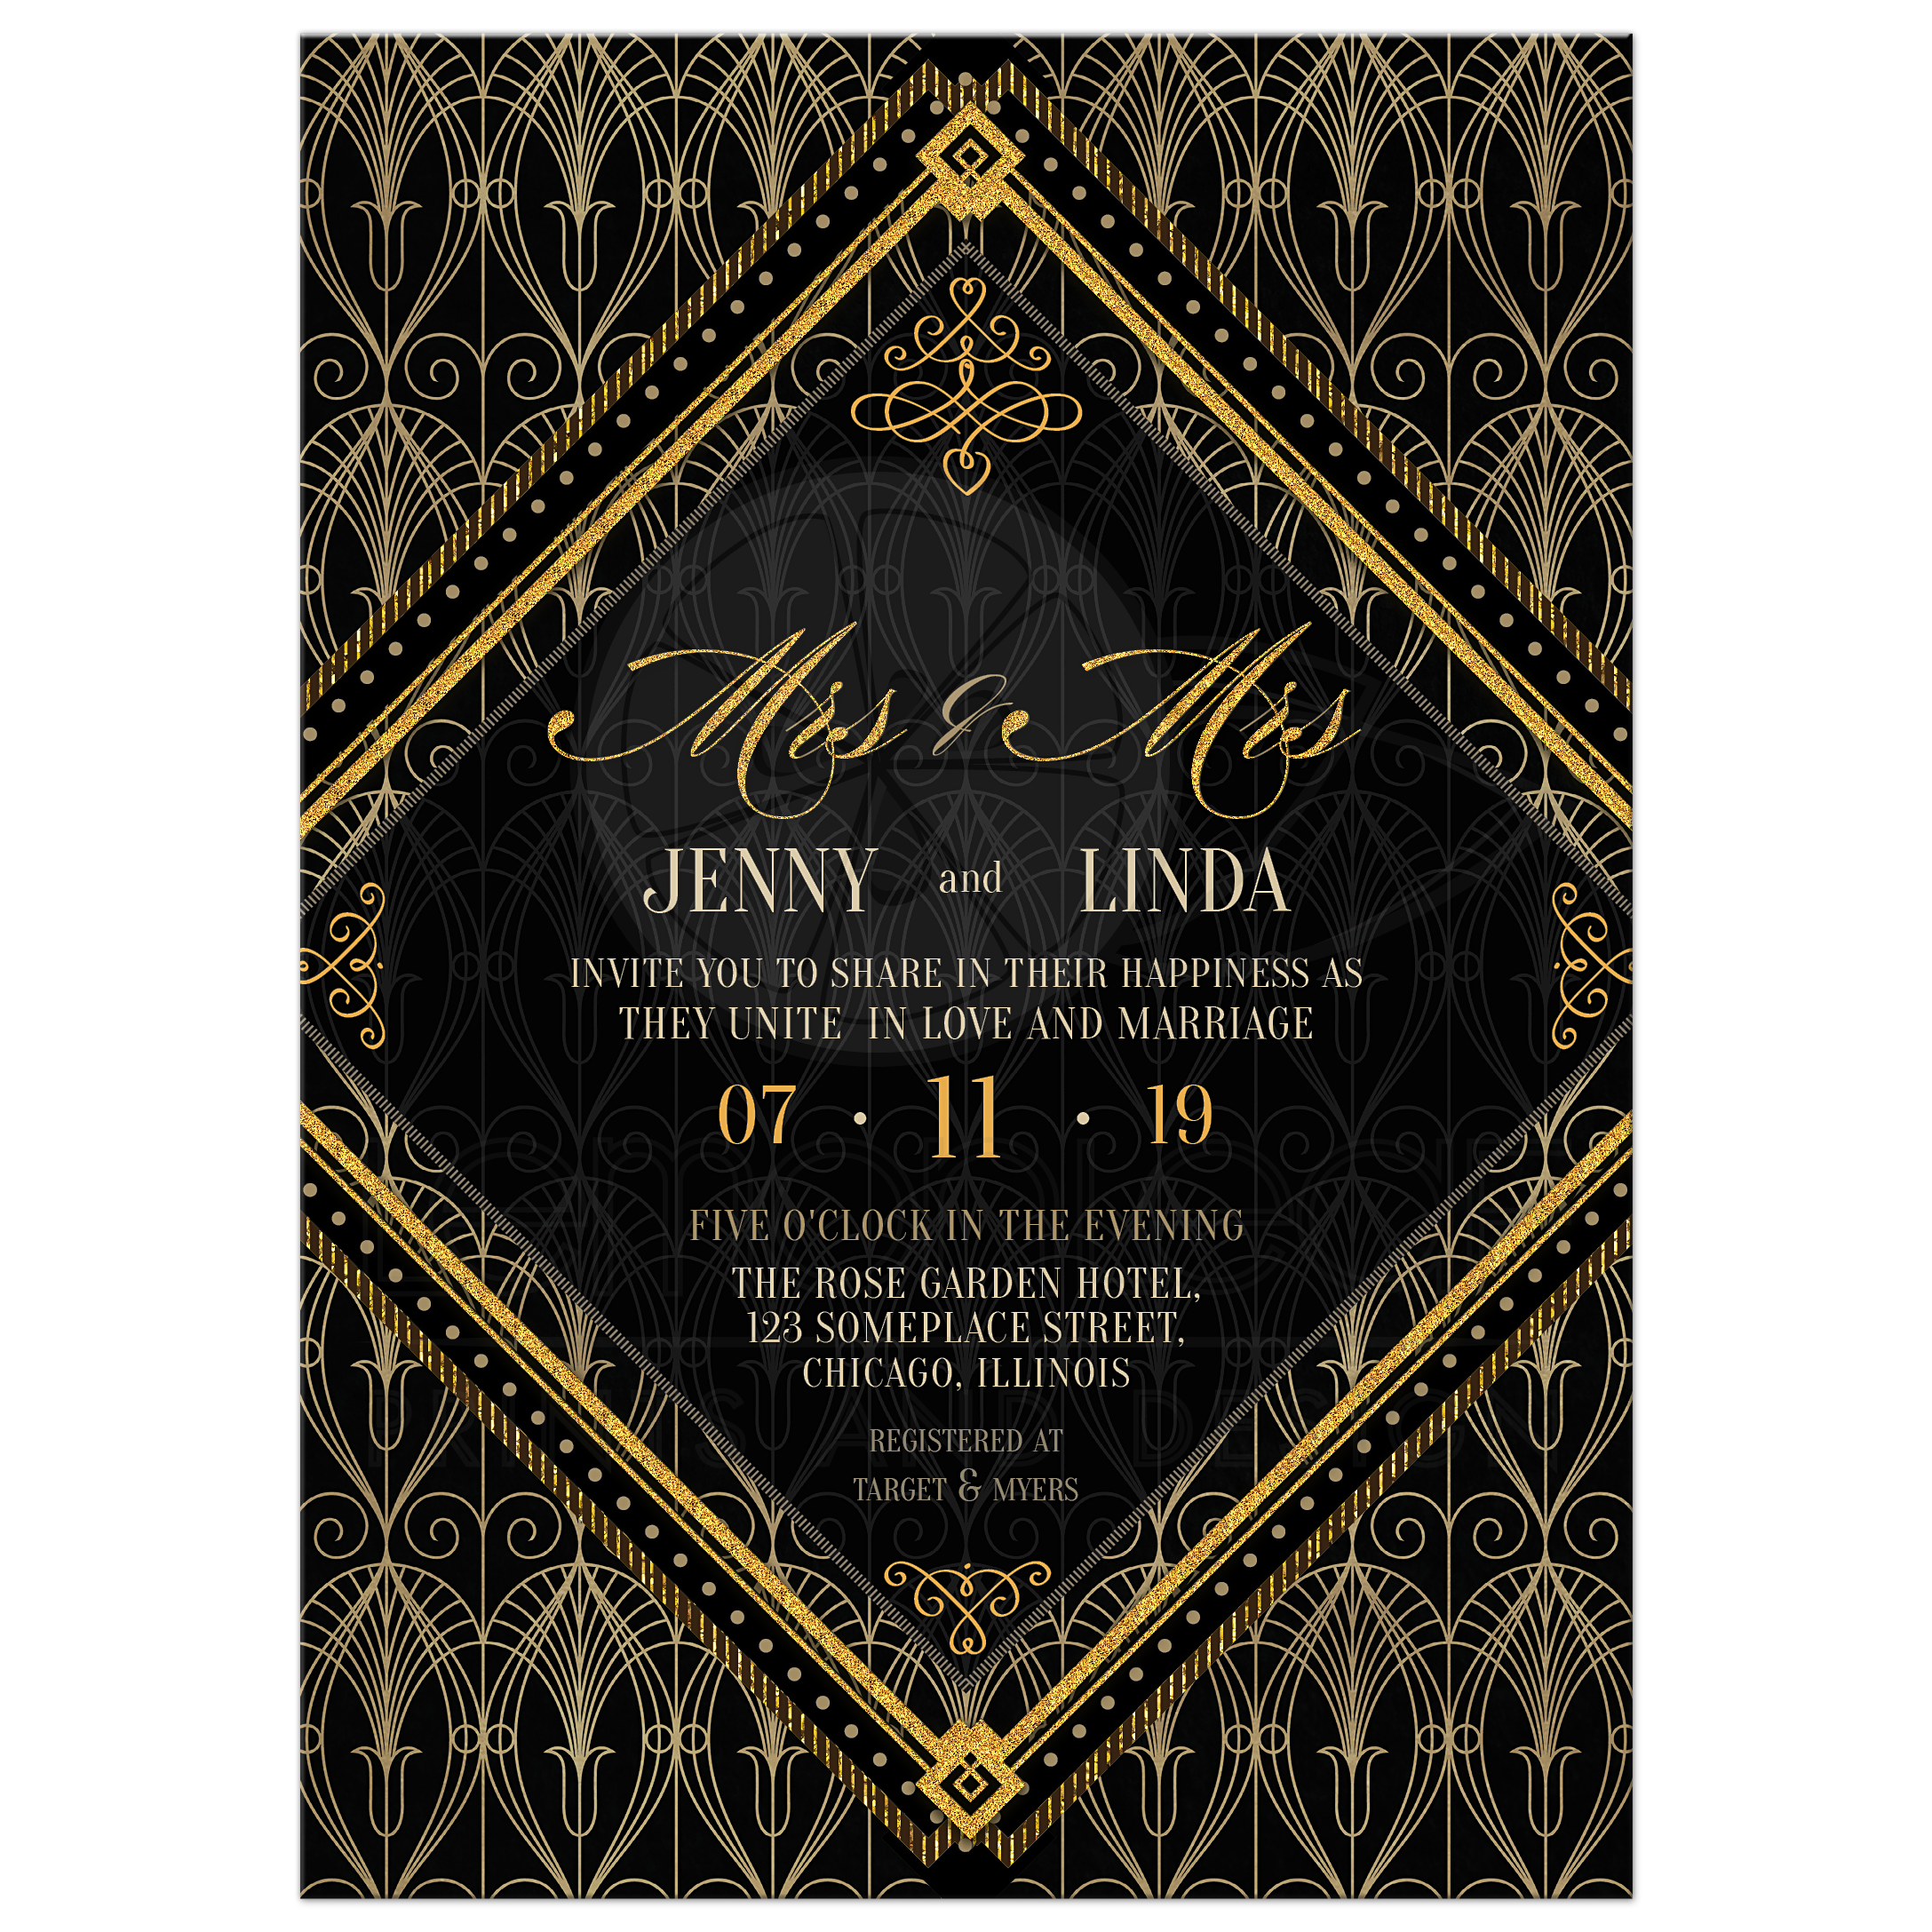 Art Deco Wedding Invitations.Black And Gold Art Deco Wedding Invitation